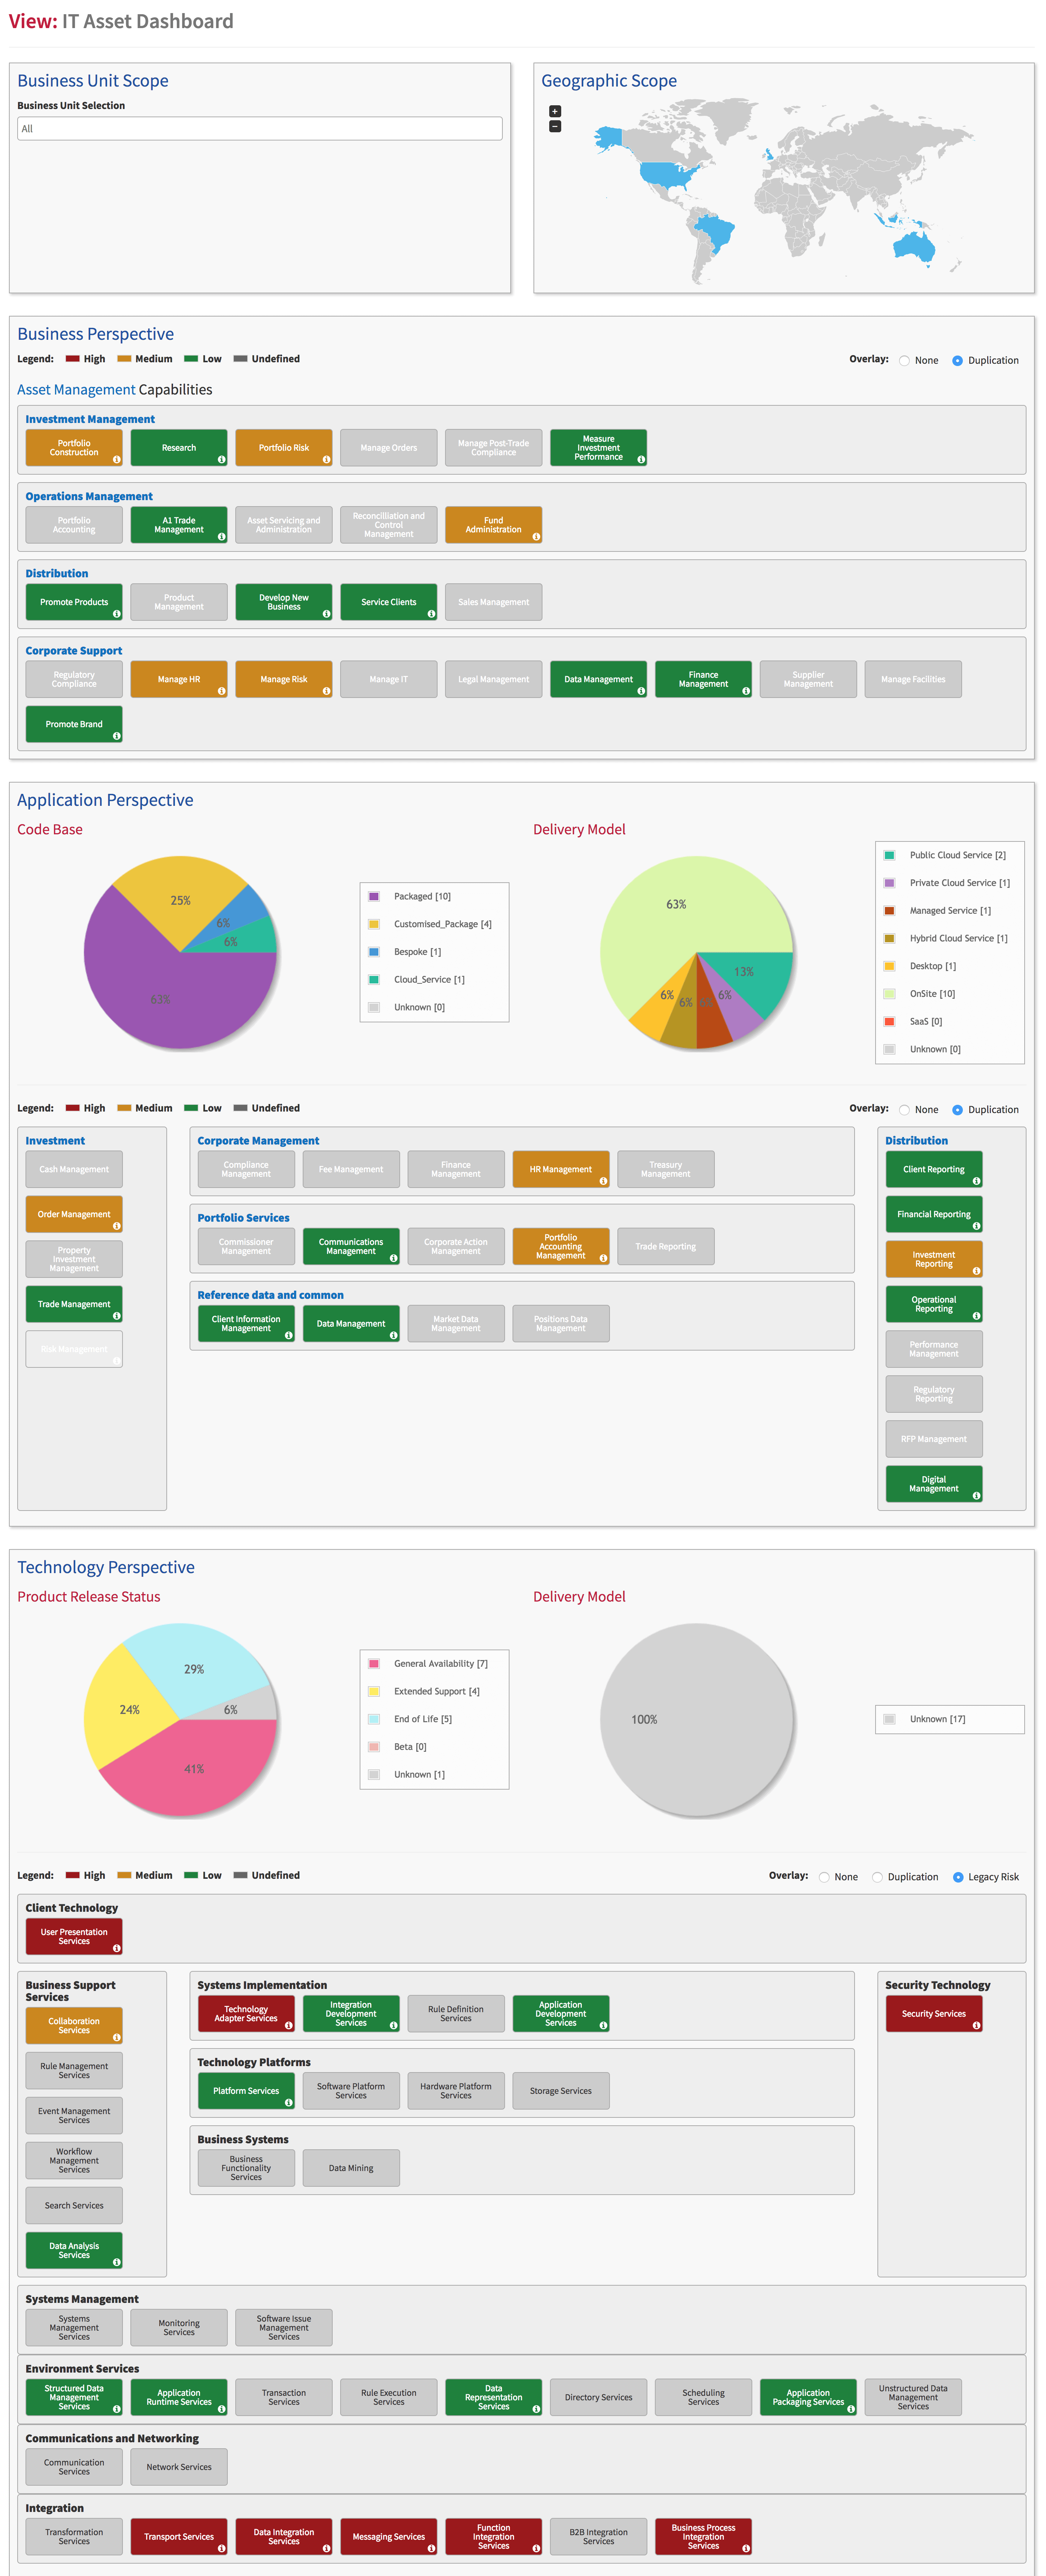 enterprise architecture asset dashboard